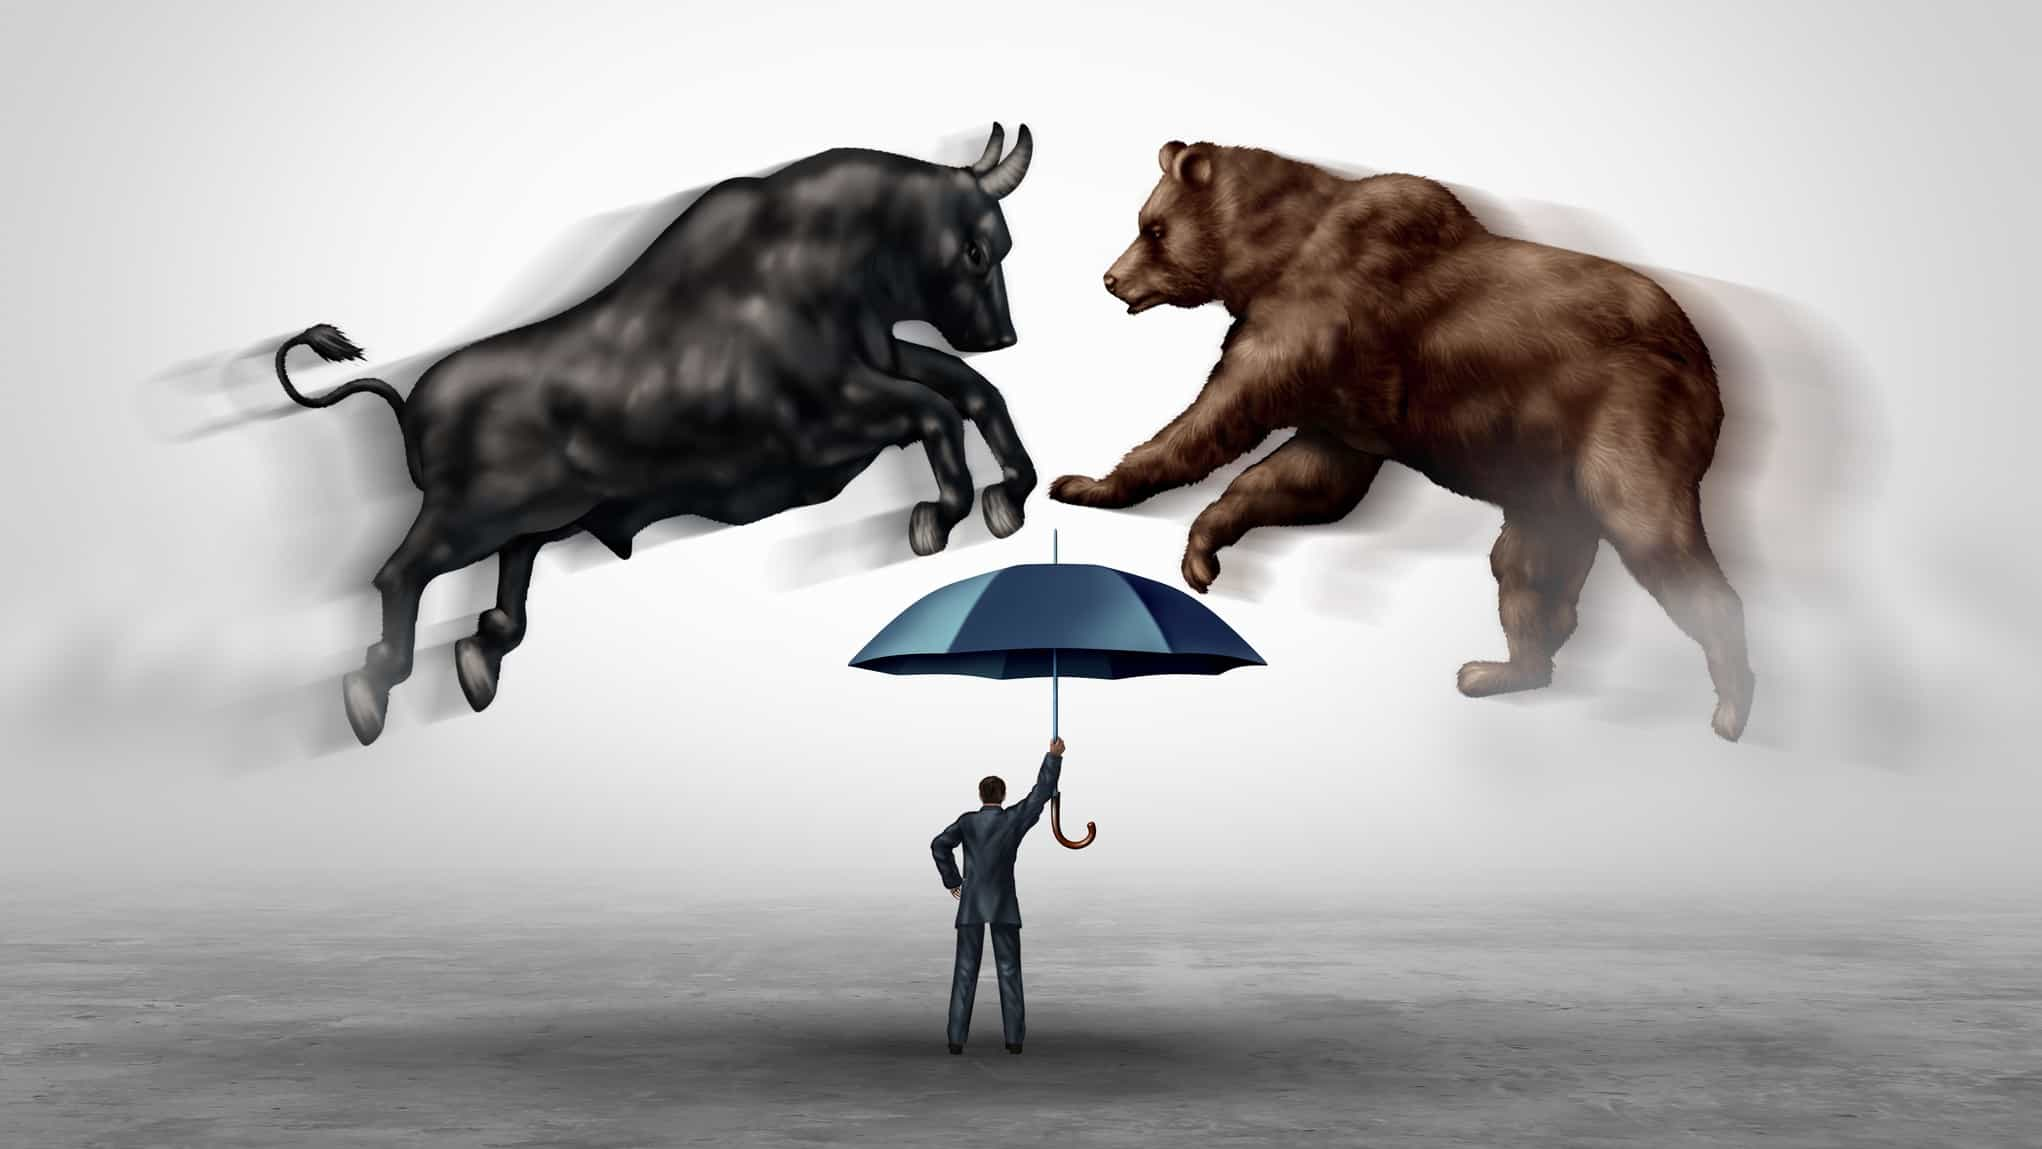 asx share price represented by bear and bull colliding over man holding an umbrella